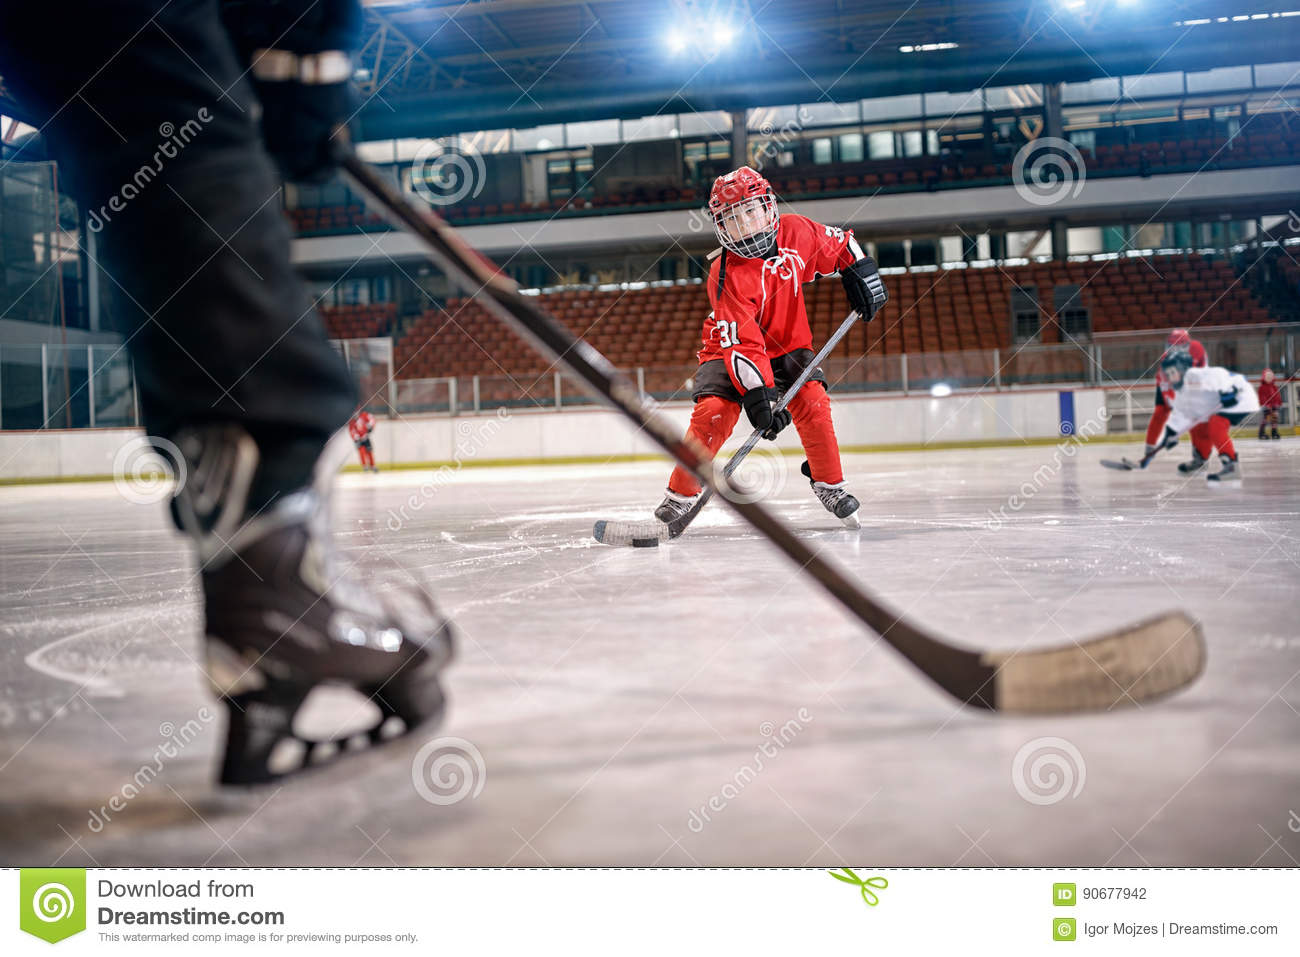 Hockey match at rink player in action